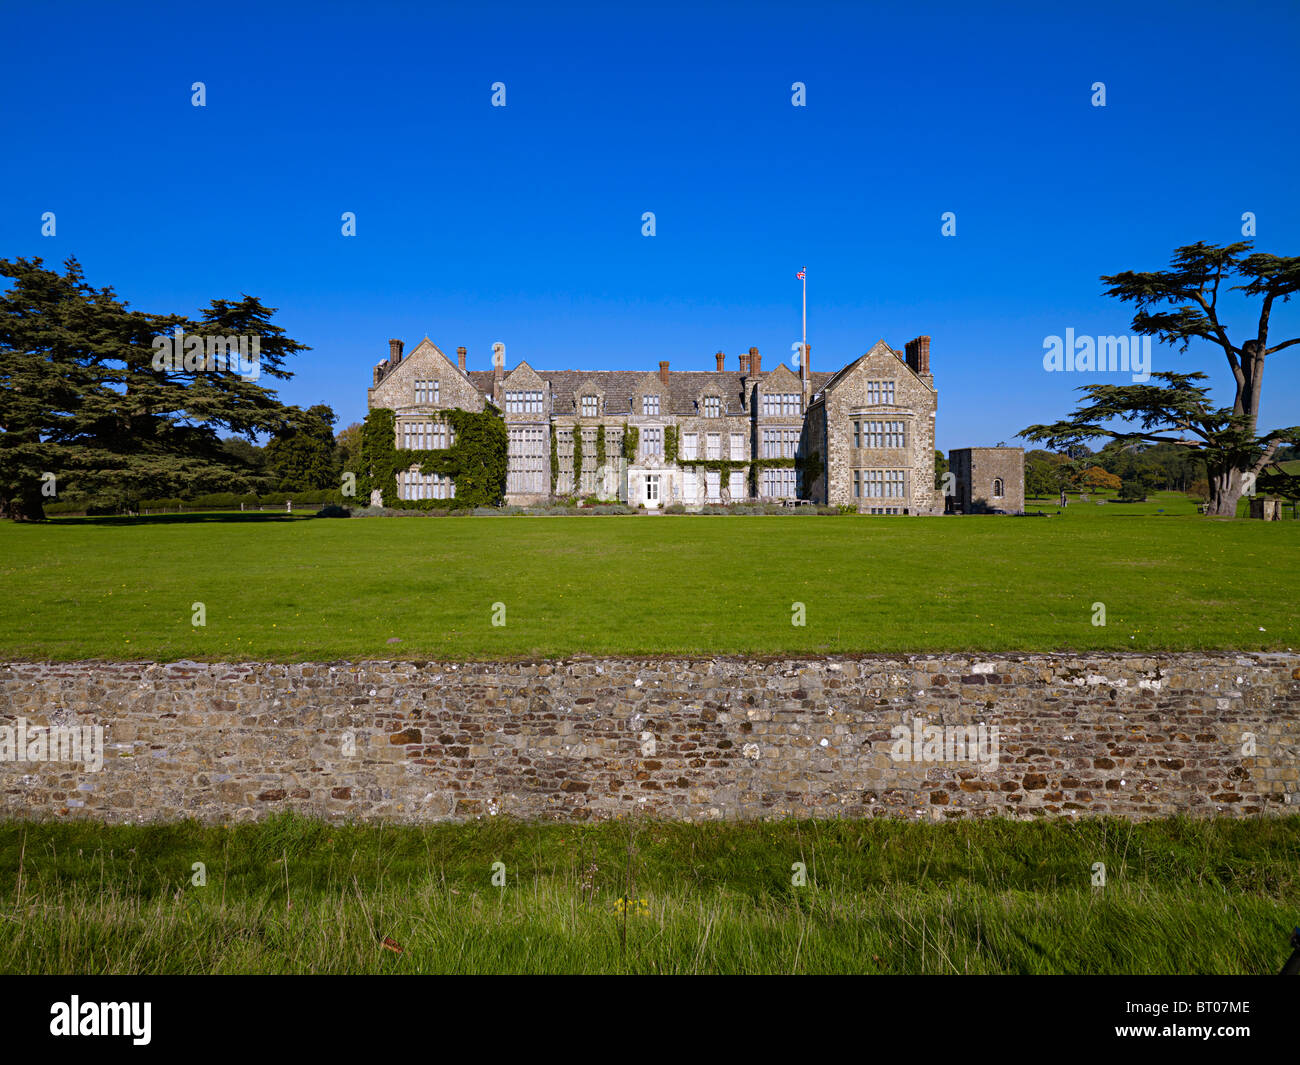 Parham House Stock Photos   Parham House Stock Images - Alamy 77ba243d3